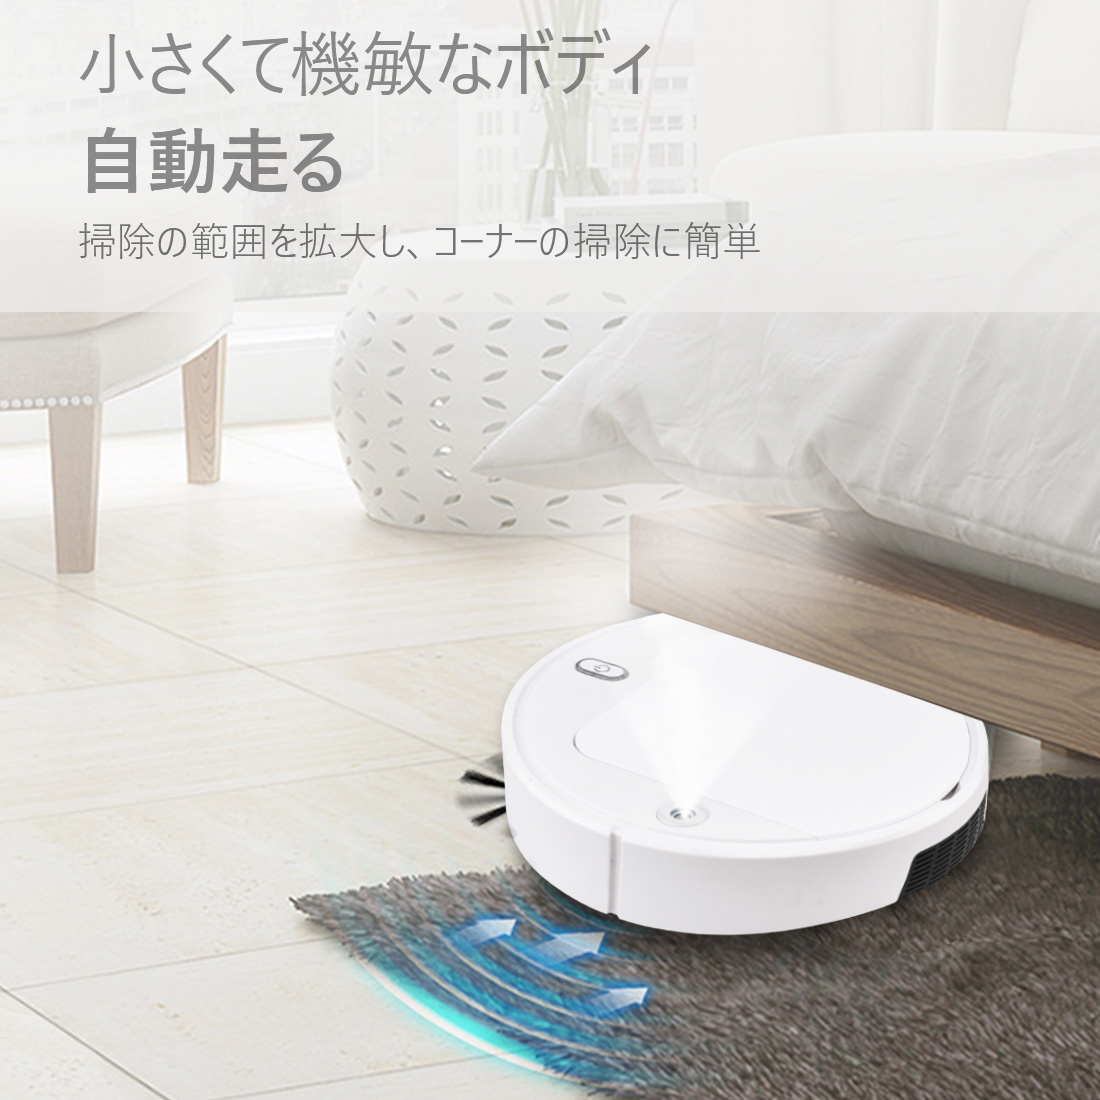 2020 Automatic 3-in-1 Intelligent Robot Vacuum Cleaner USB Charging Sweeping Robot Wet And Dry Dual-use Ultraviolet Disinfection